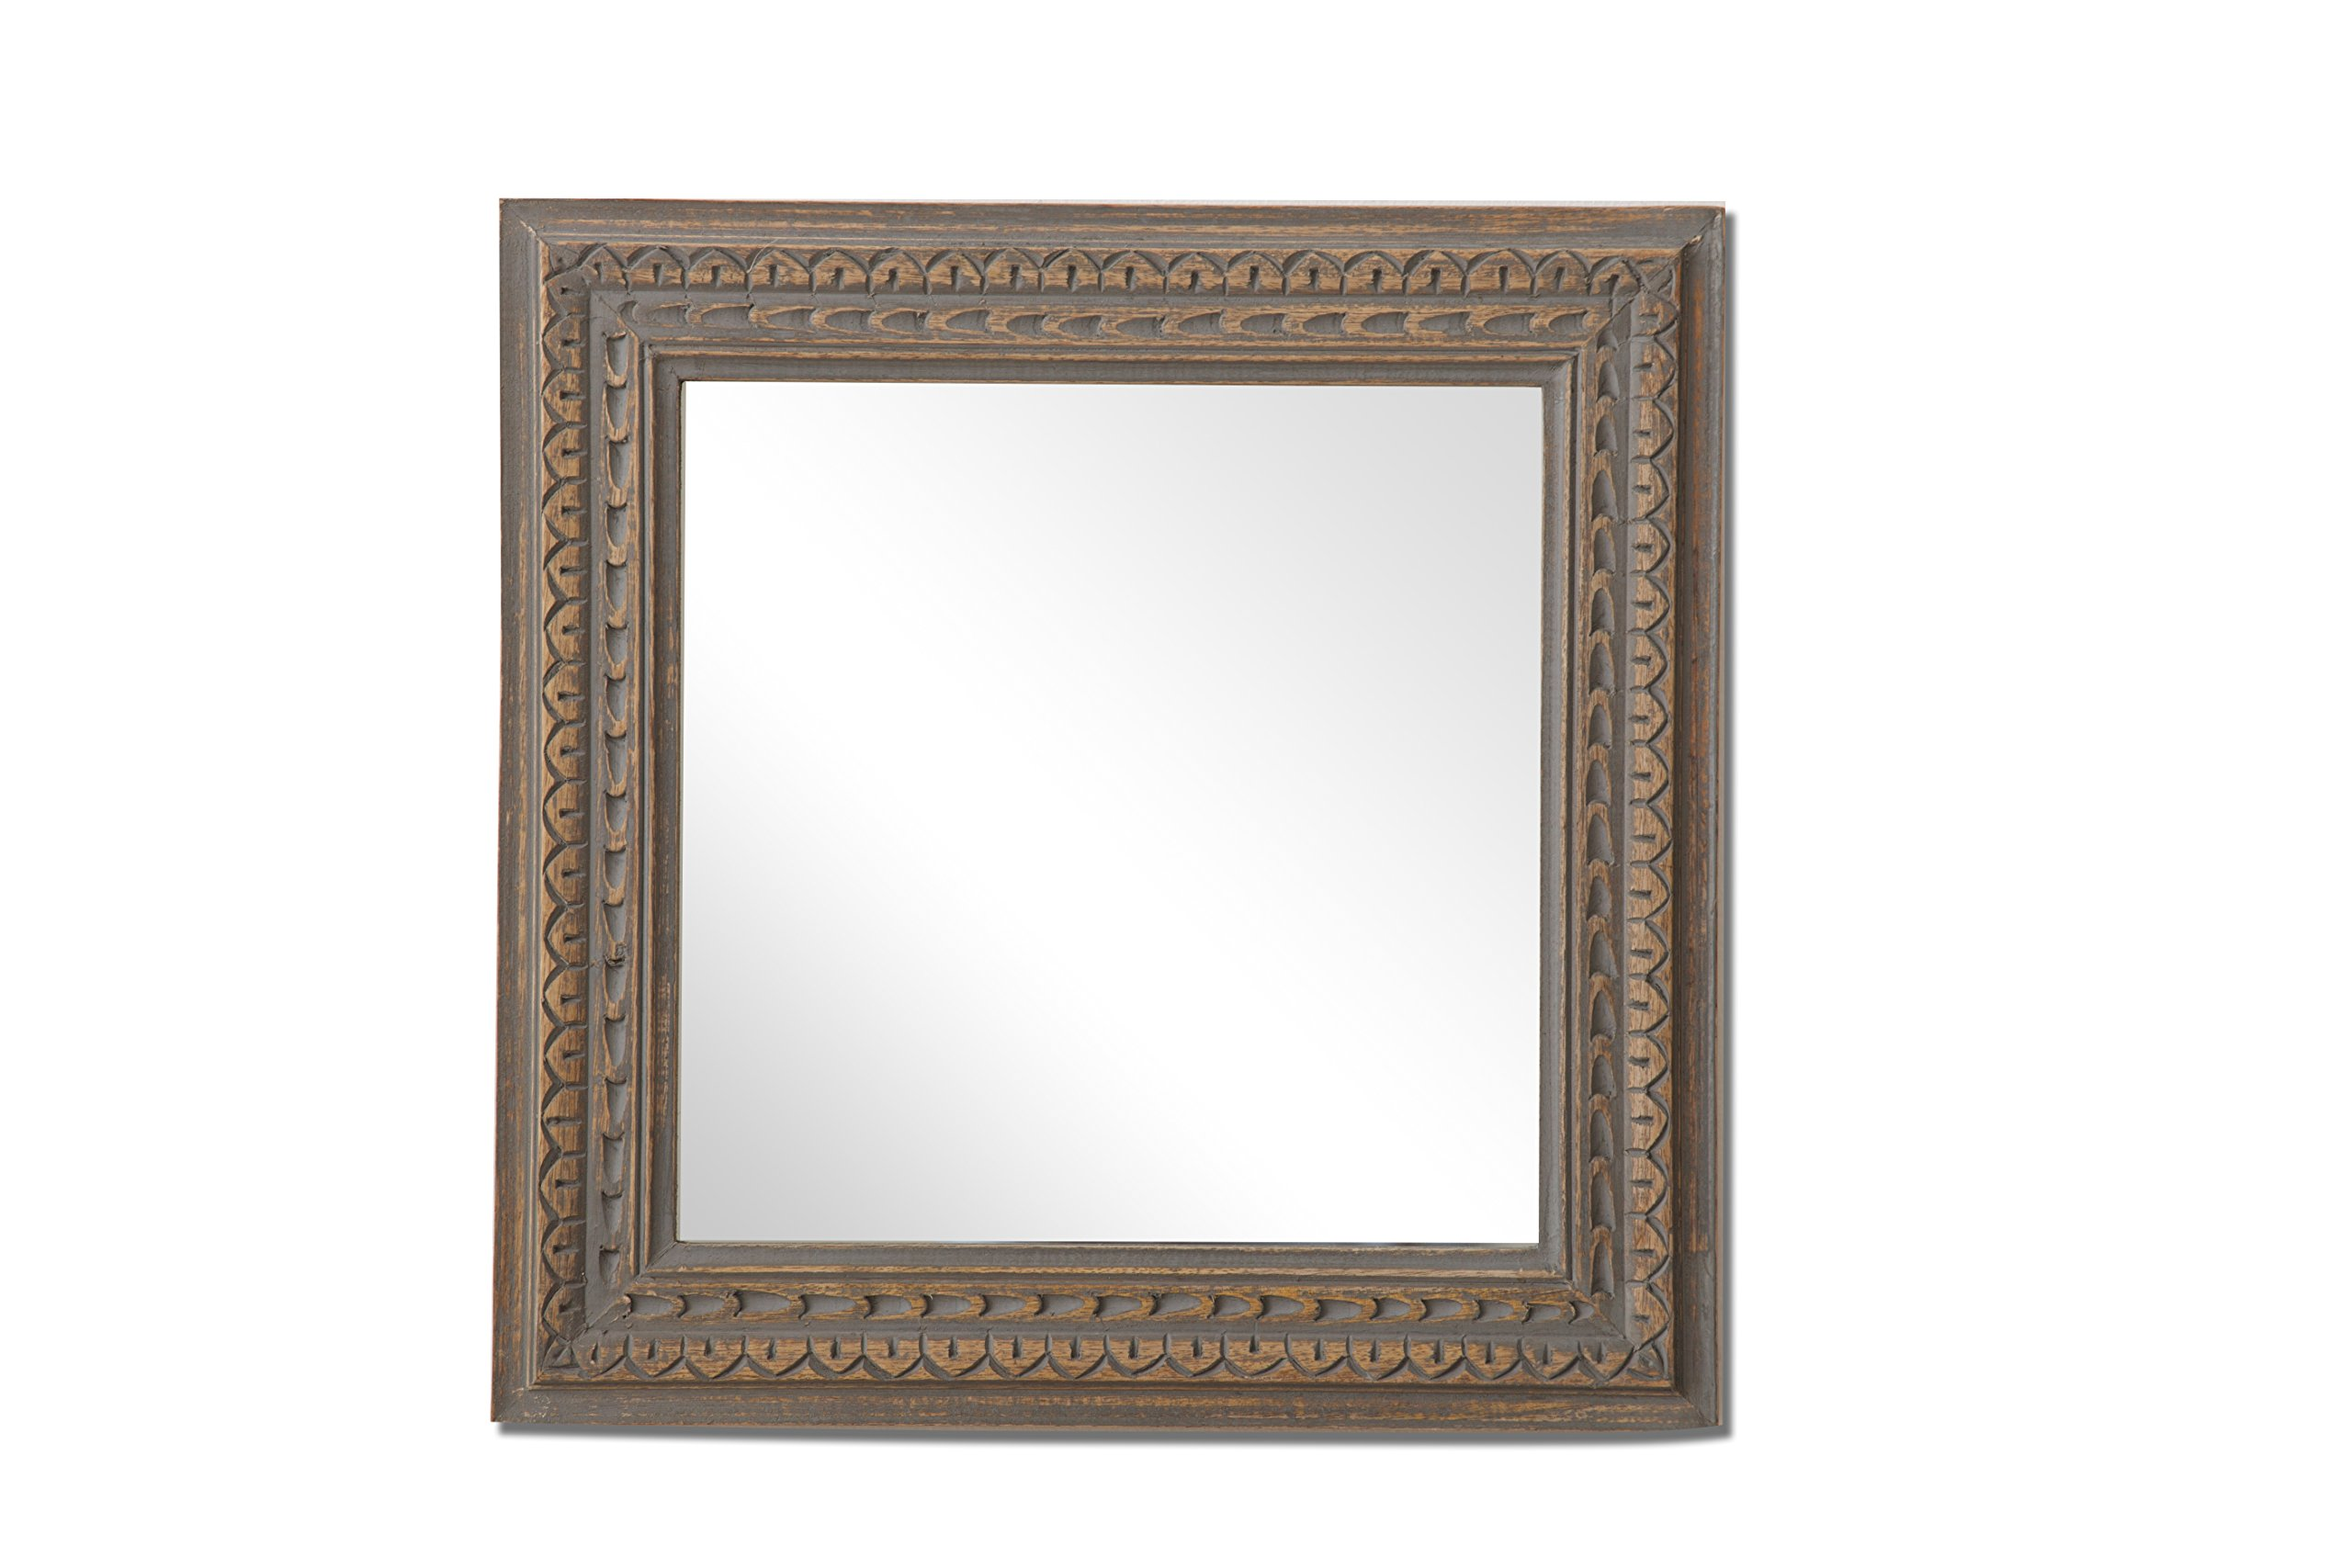 The Urban Port Square Mango Wood Mirror with Aesthetic Carvings, Brown